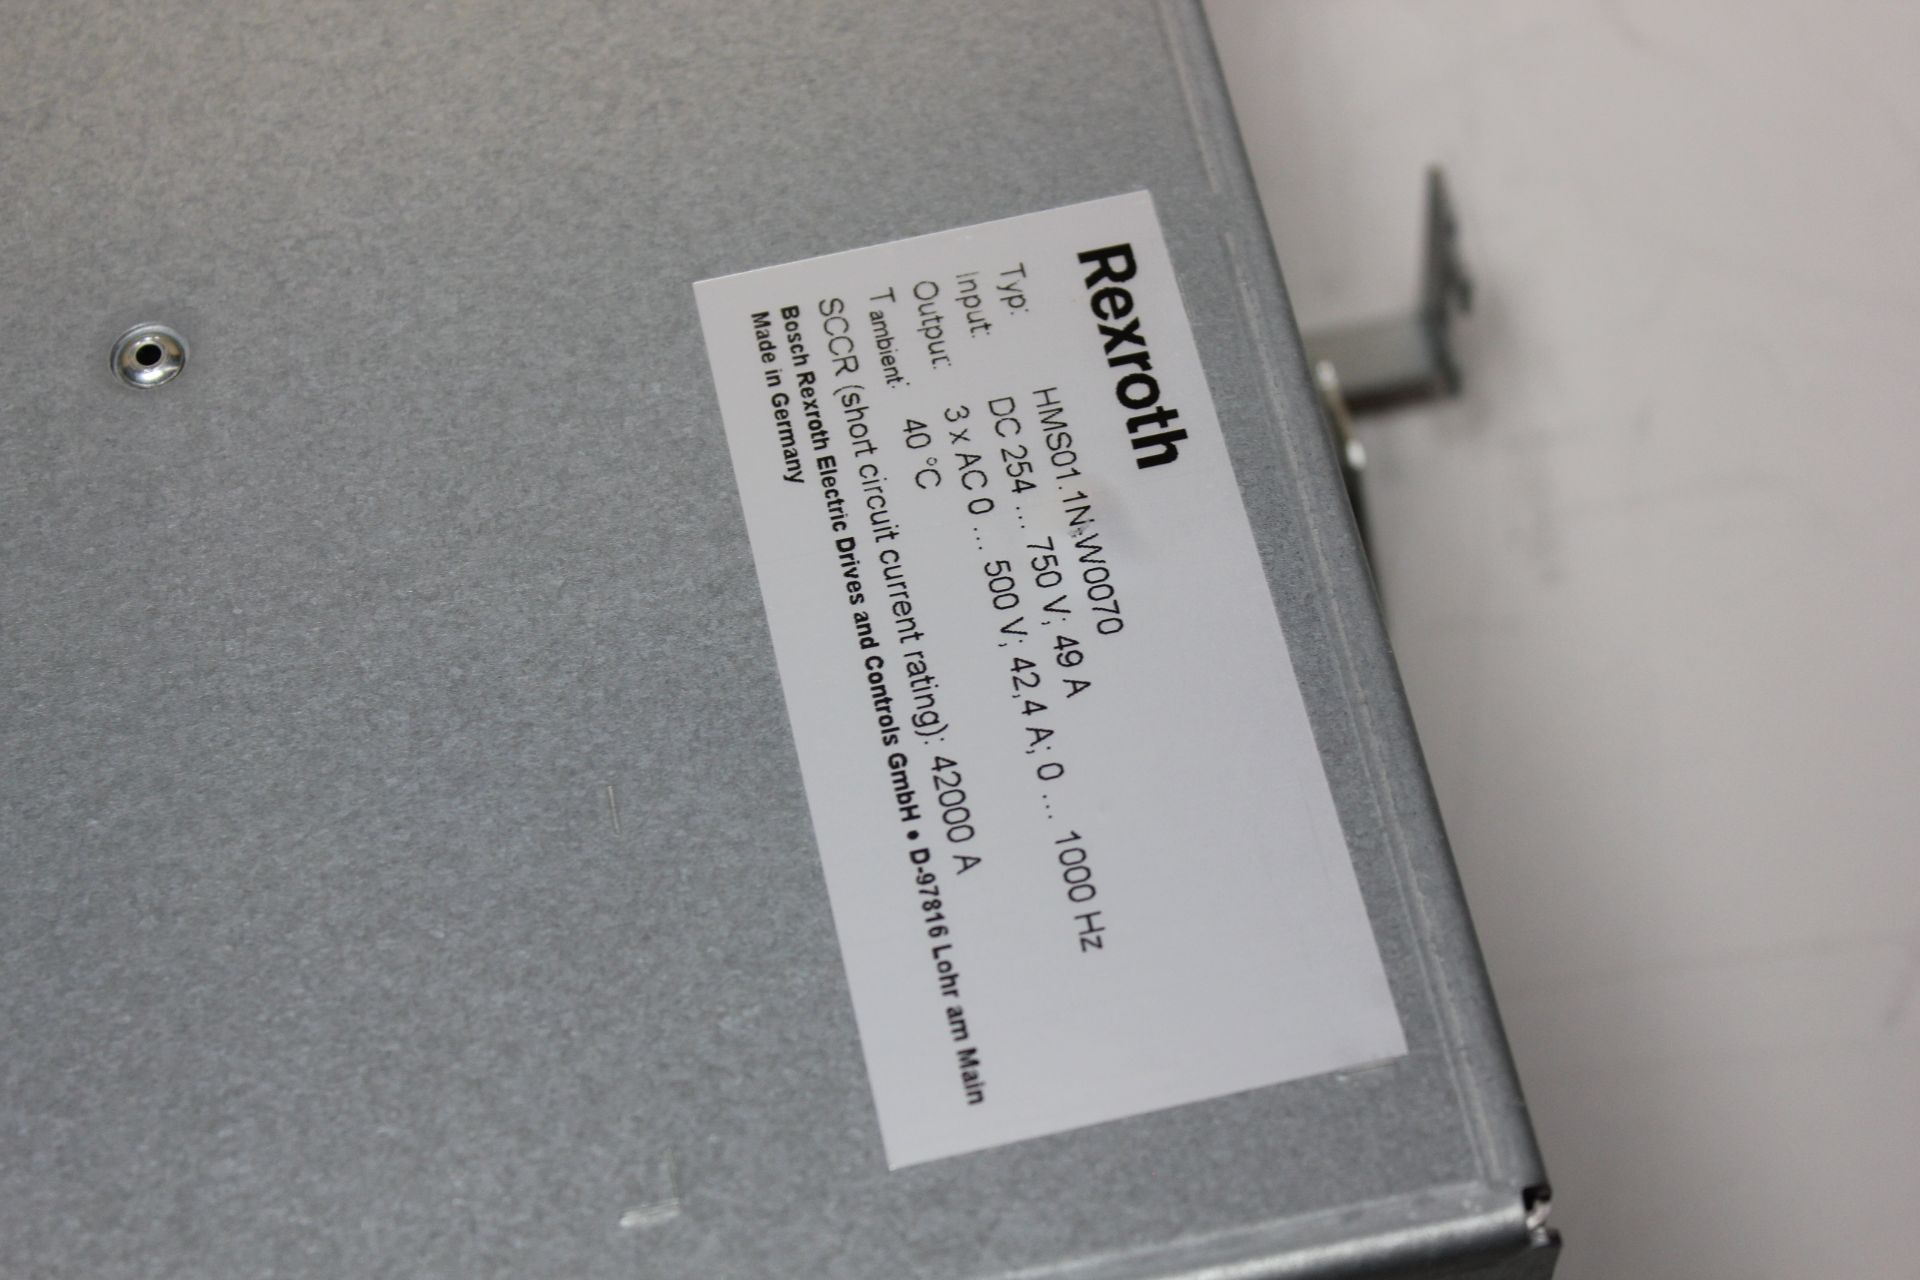 REXROTH INDRADRIVE M SINGLE AXIS INVERTER SERCOS MODULE - Image 6 of 7